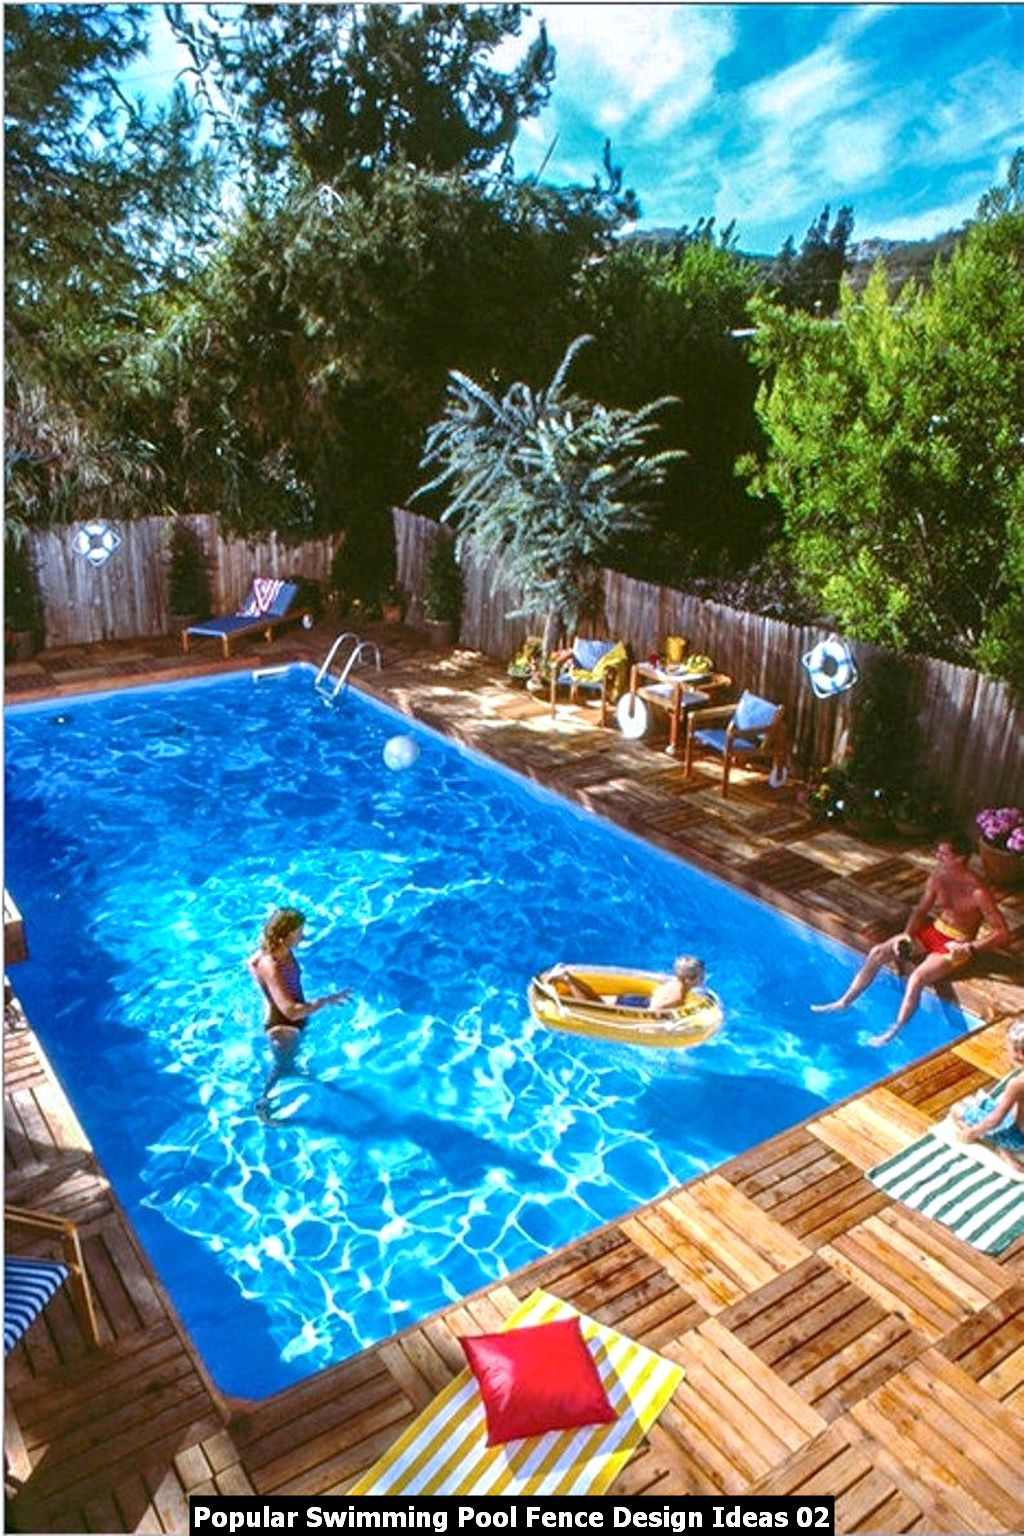 Popular Swimming Pool Fence Design Ideas 02